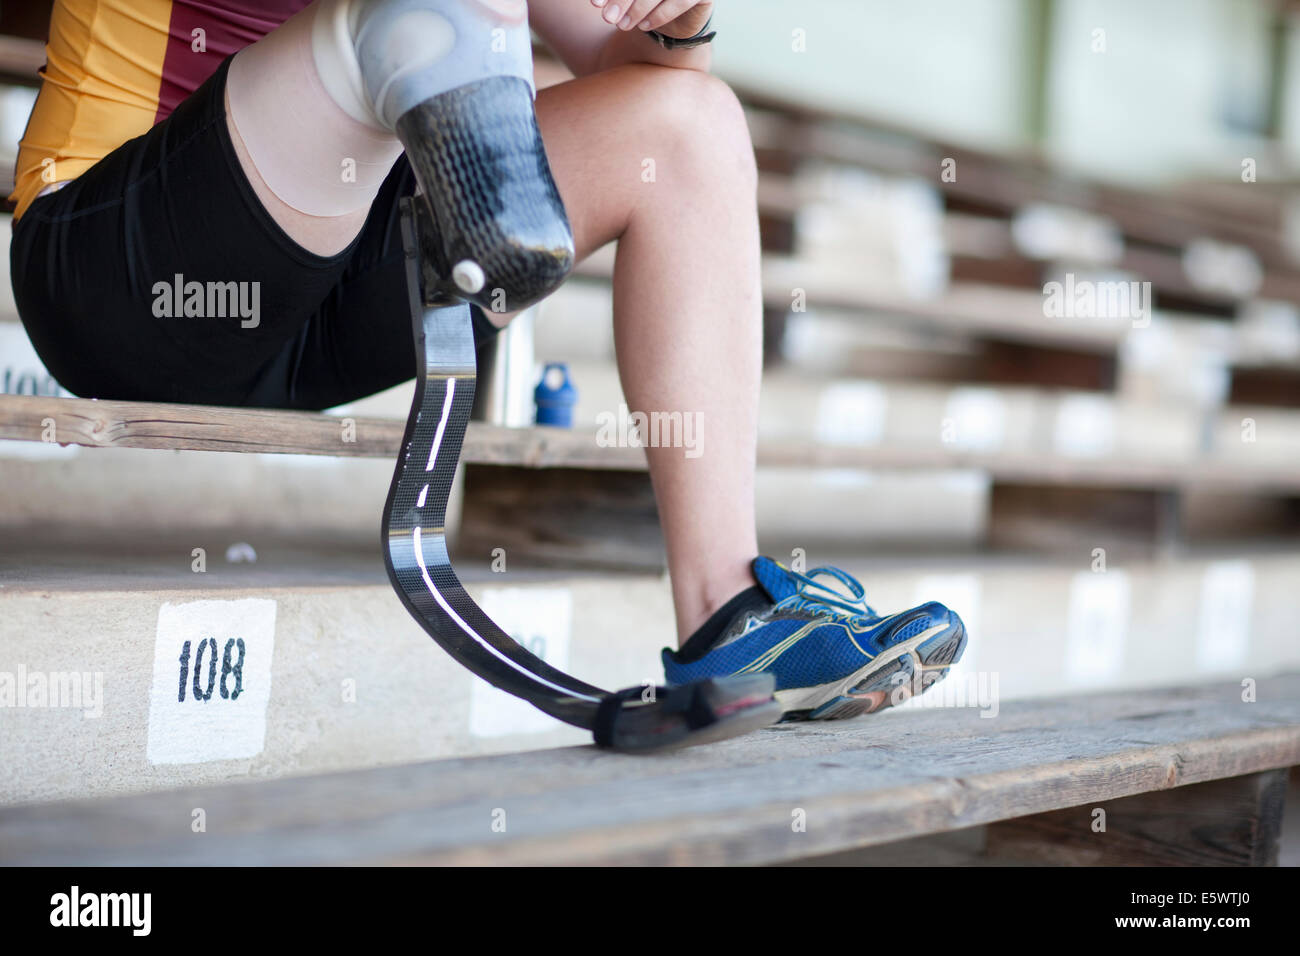 Sprinter sitting with prosthetic leg on - Stock Image